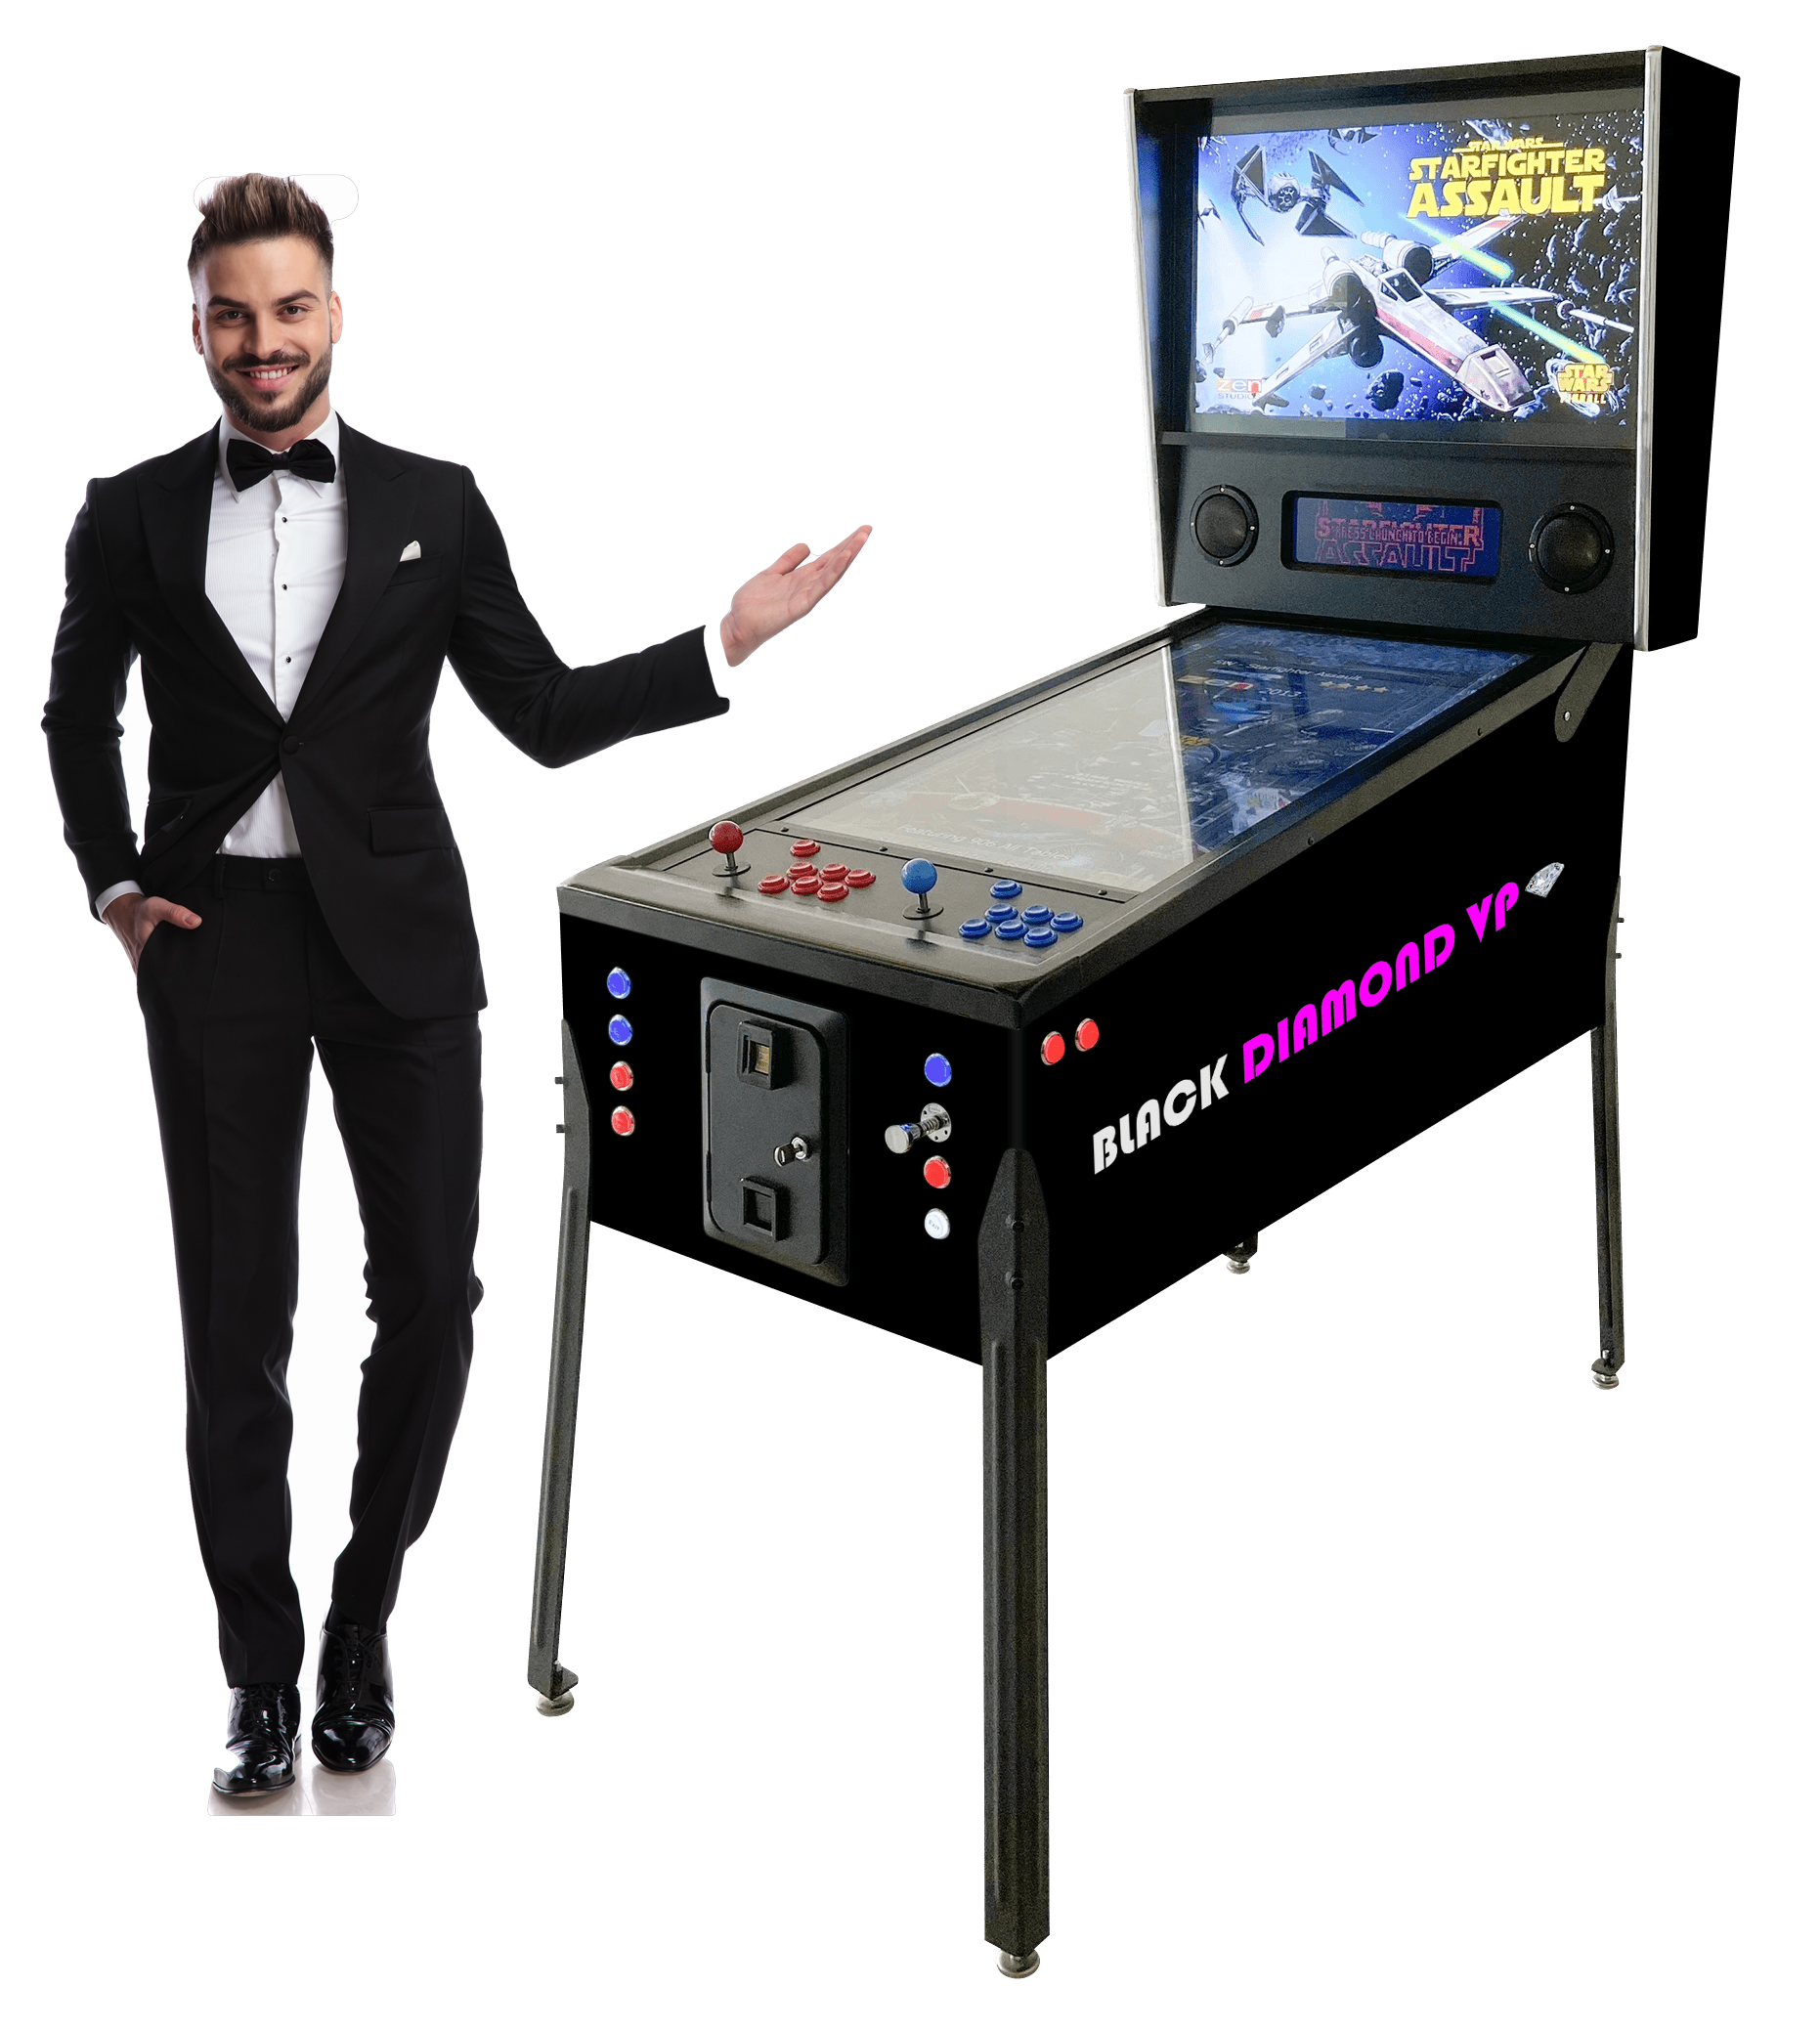 BLACK DIAMOND VP™ Virtual Pinball Machine Includes Over 1306 Games! Large-43